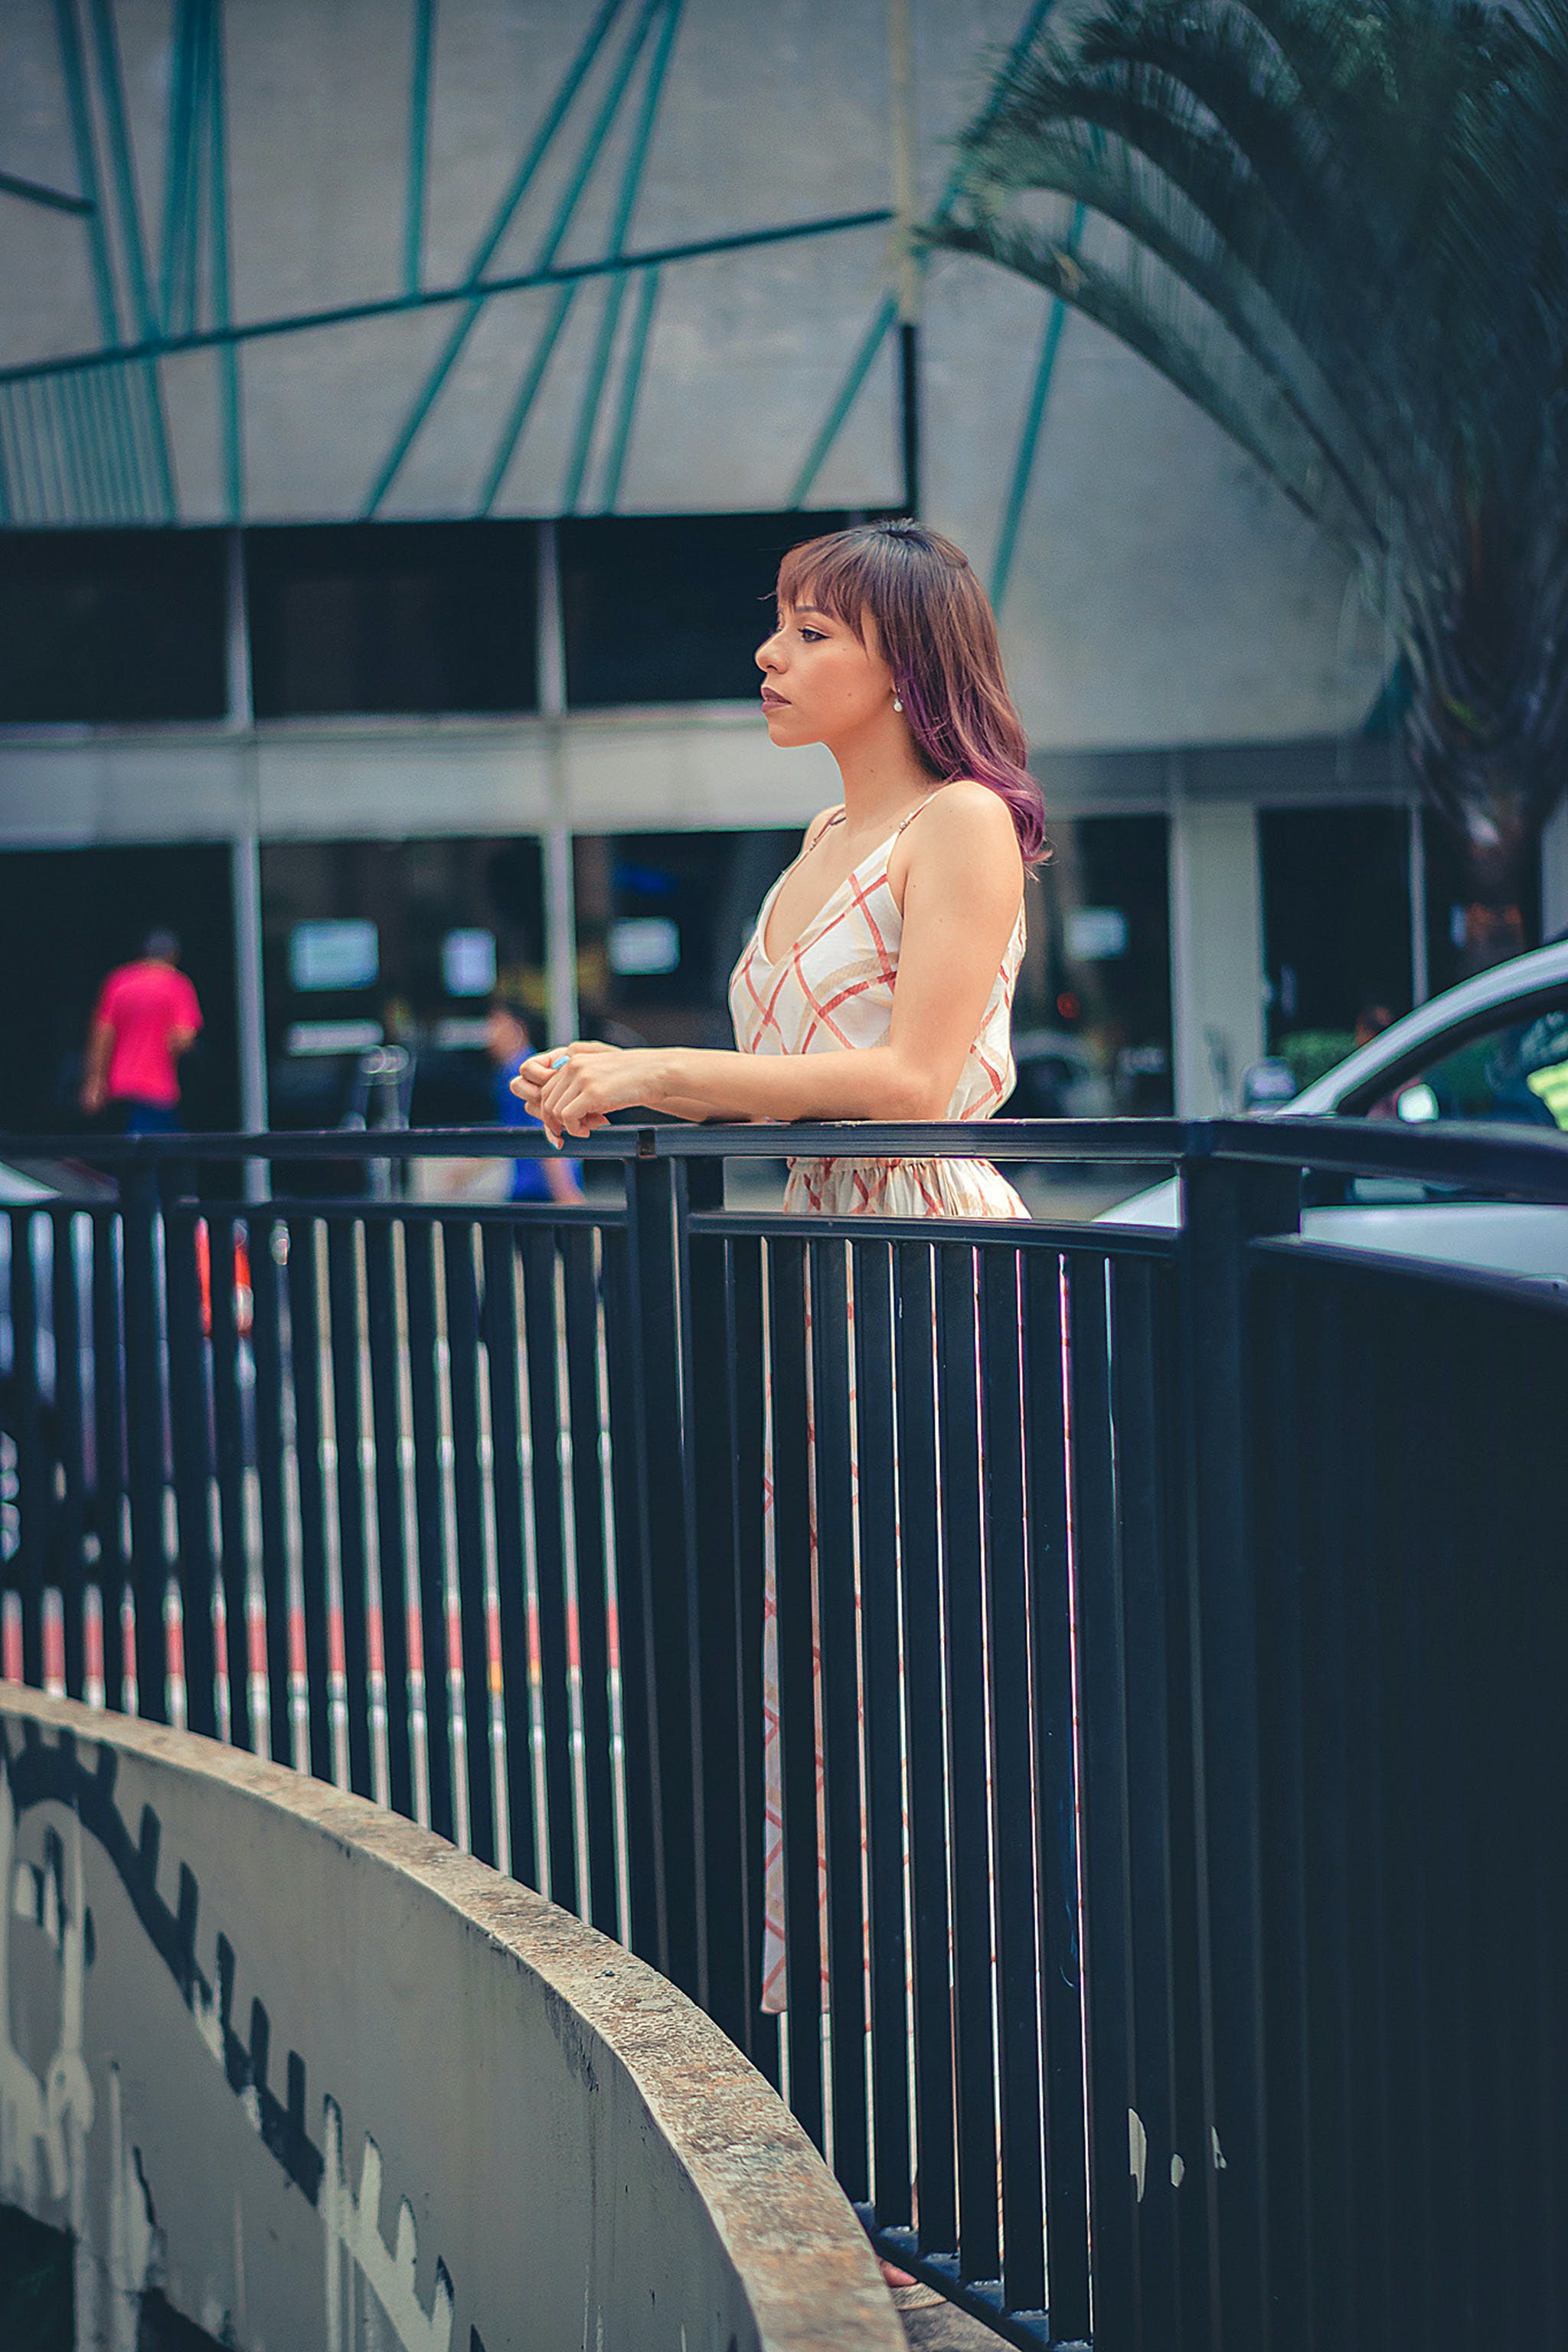 Woman Leaning on a Railing